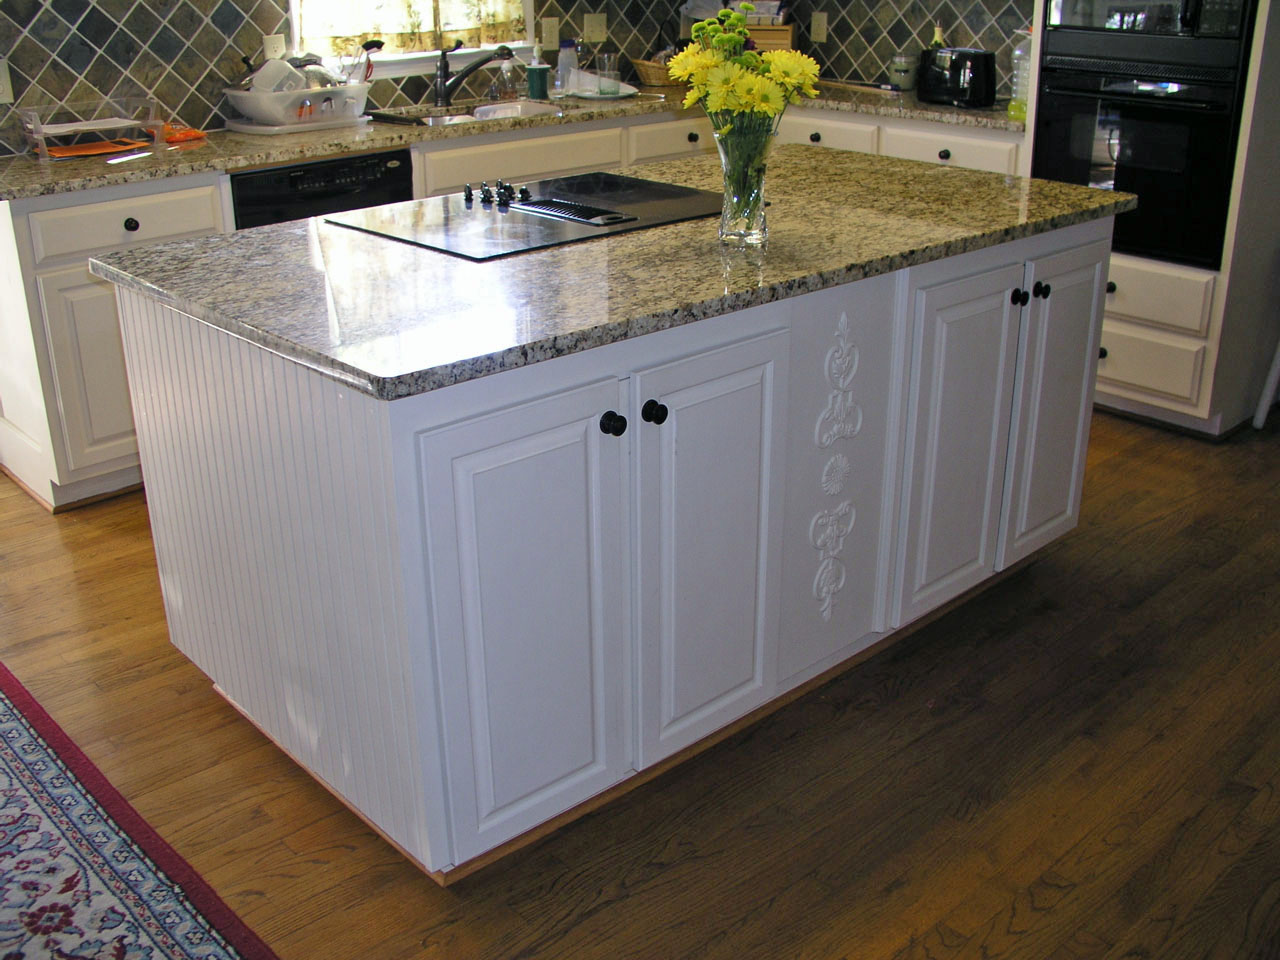 kitchen island base cabinets white kitchen base cabinets Photo Gallery of the Kitchen islands with cabinets for people who want to save precious room of their cooking areas